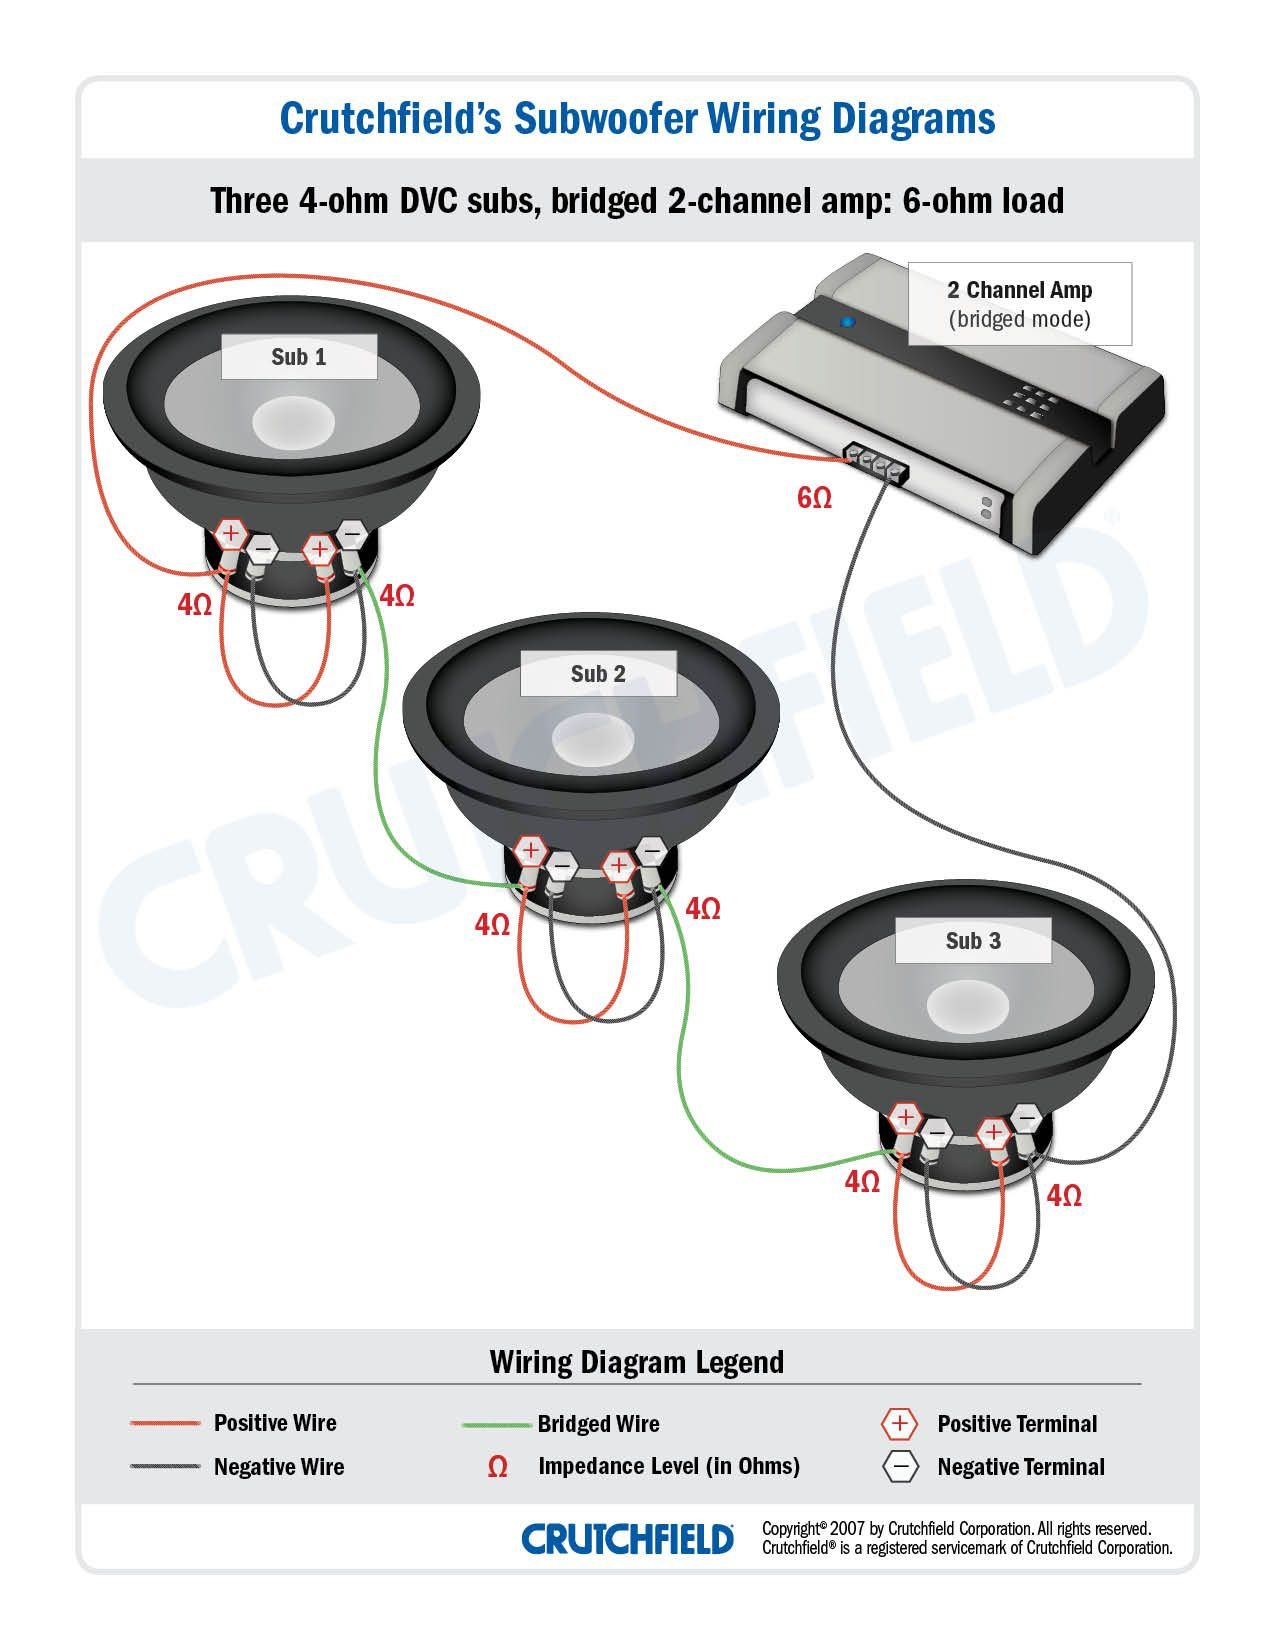 top 10 subwoofer wiring diagram free download 3 dvc 4 ohm 2 wiring diagram electrical wires